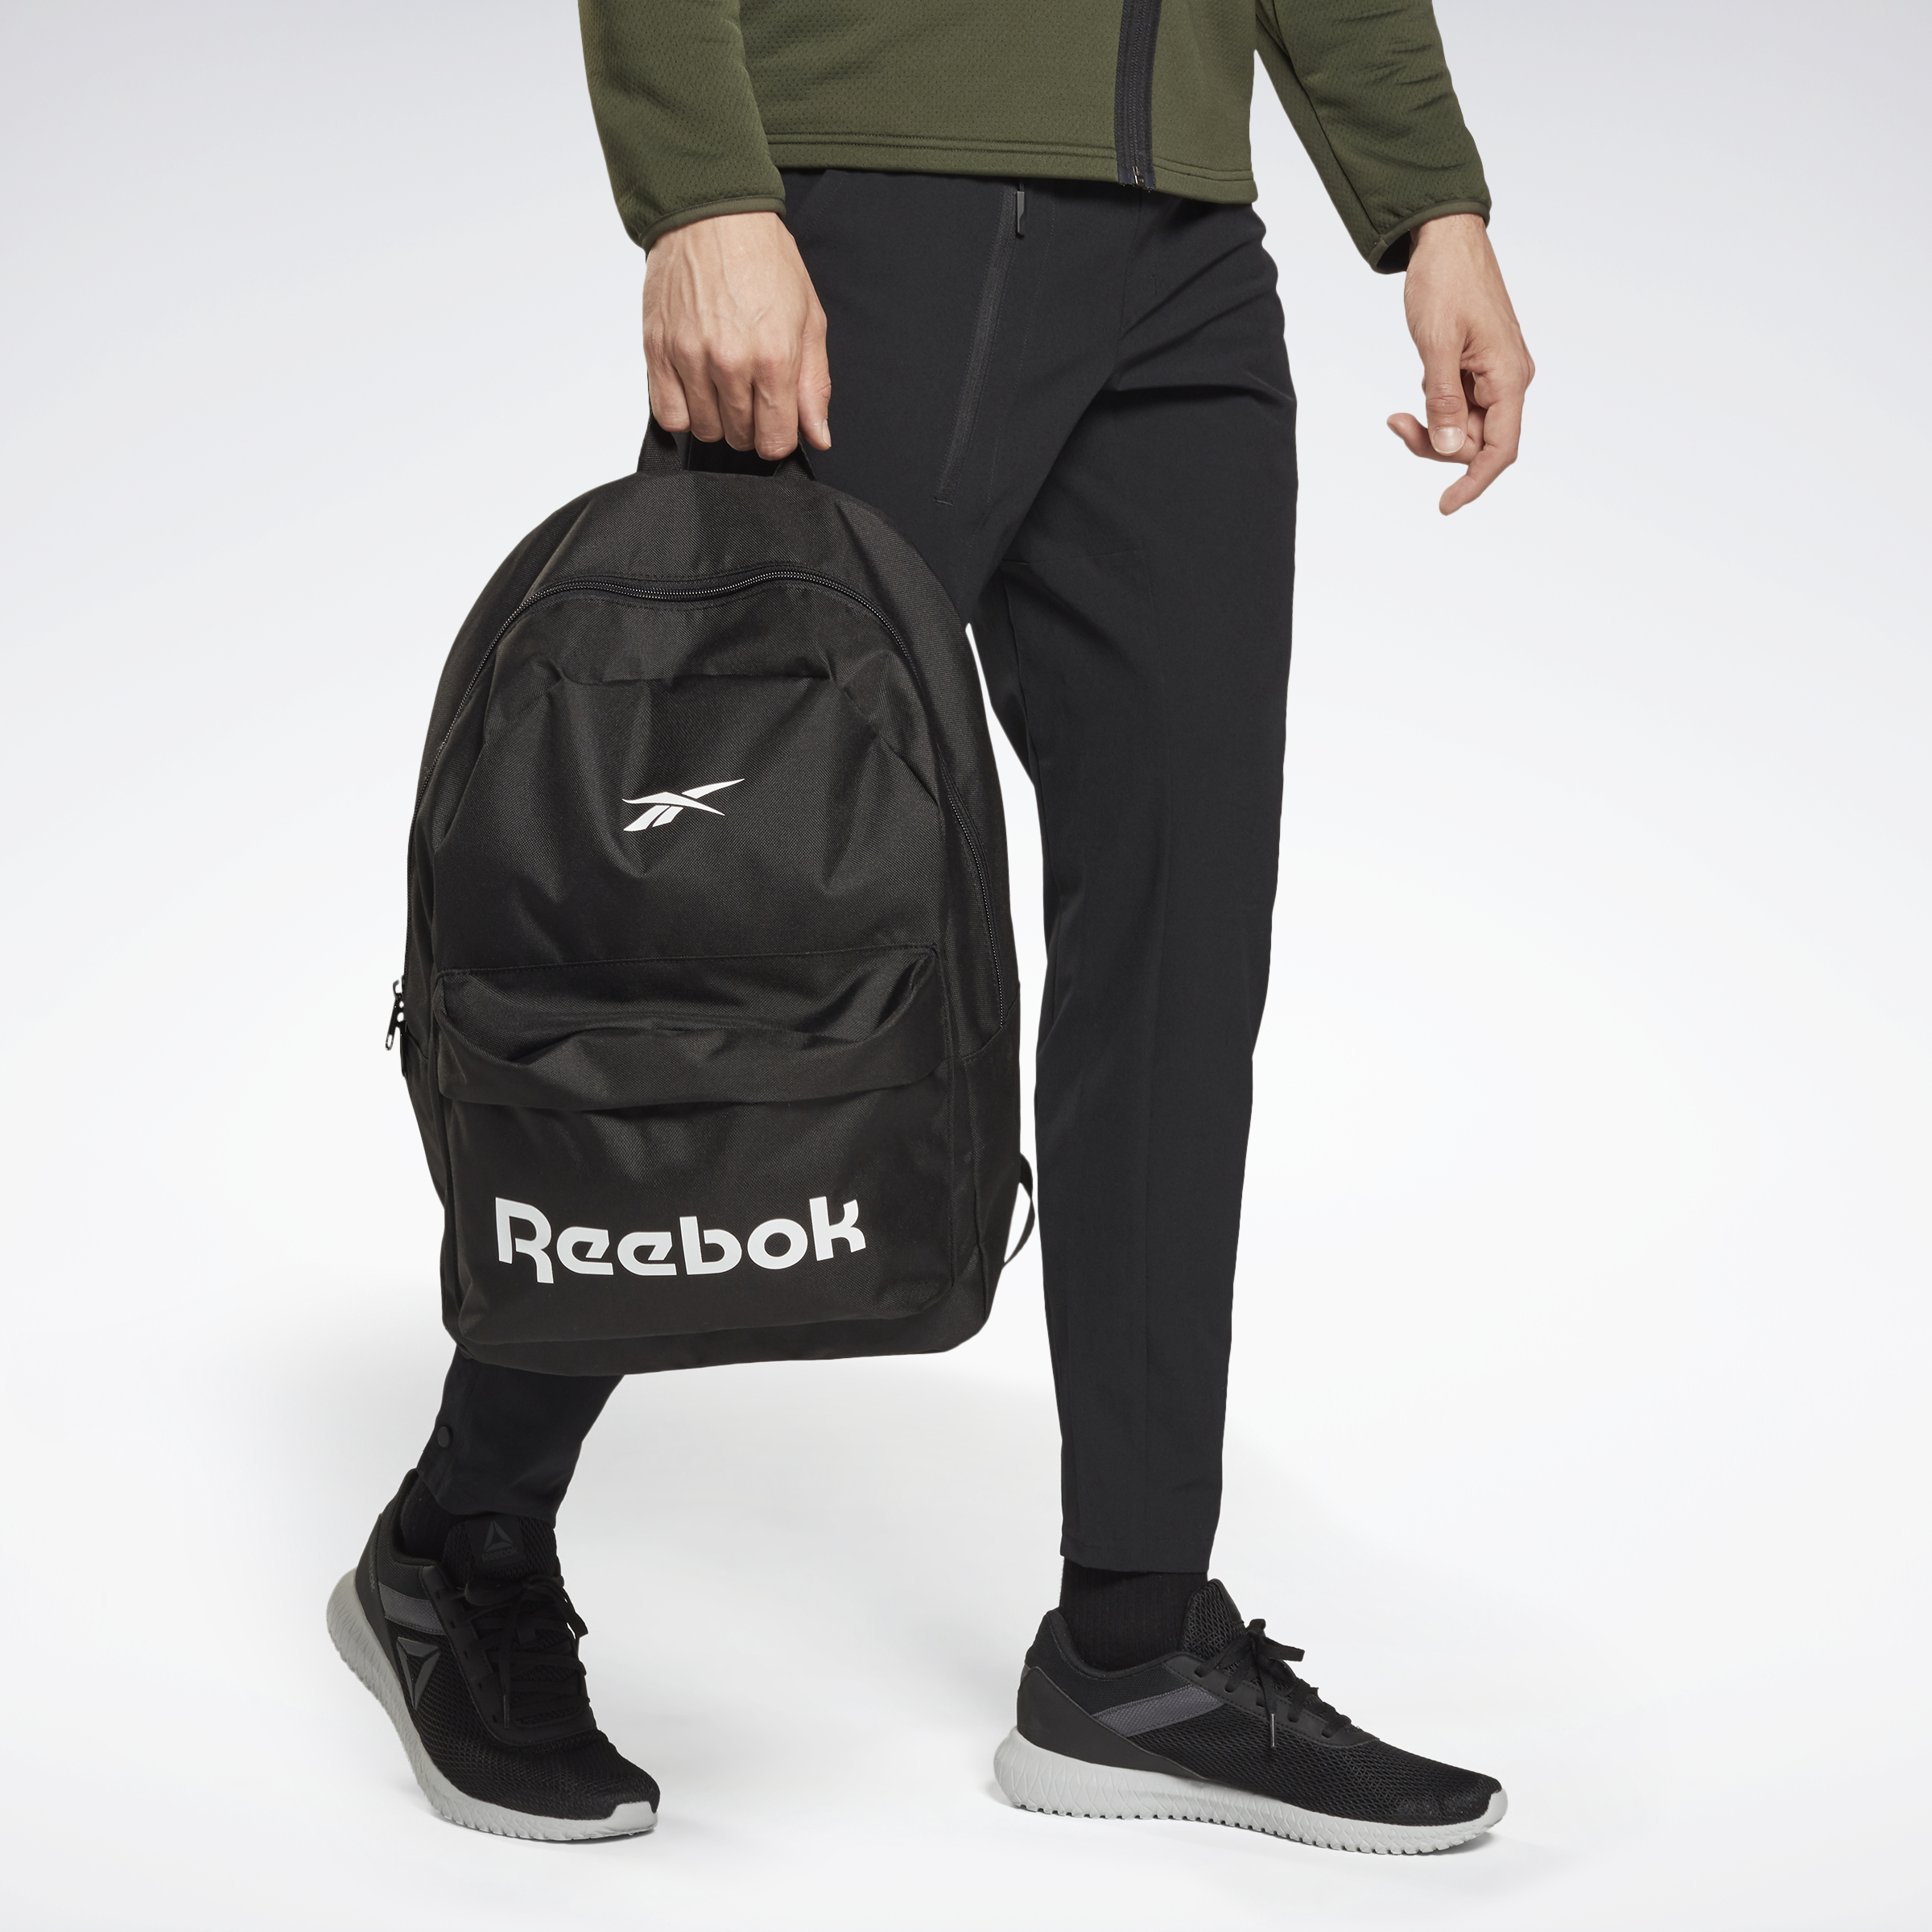 Indexbild 5 - Reebok Sport Active Core Backpack Small Herren, Damen Taschen Rucksäcke